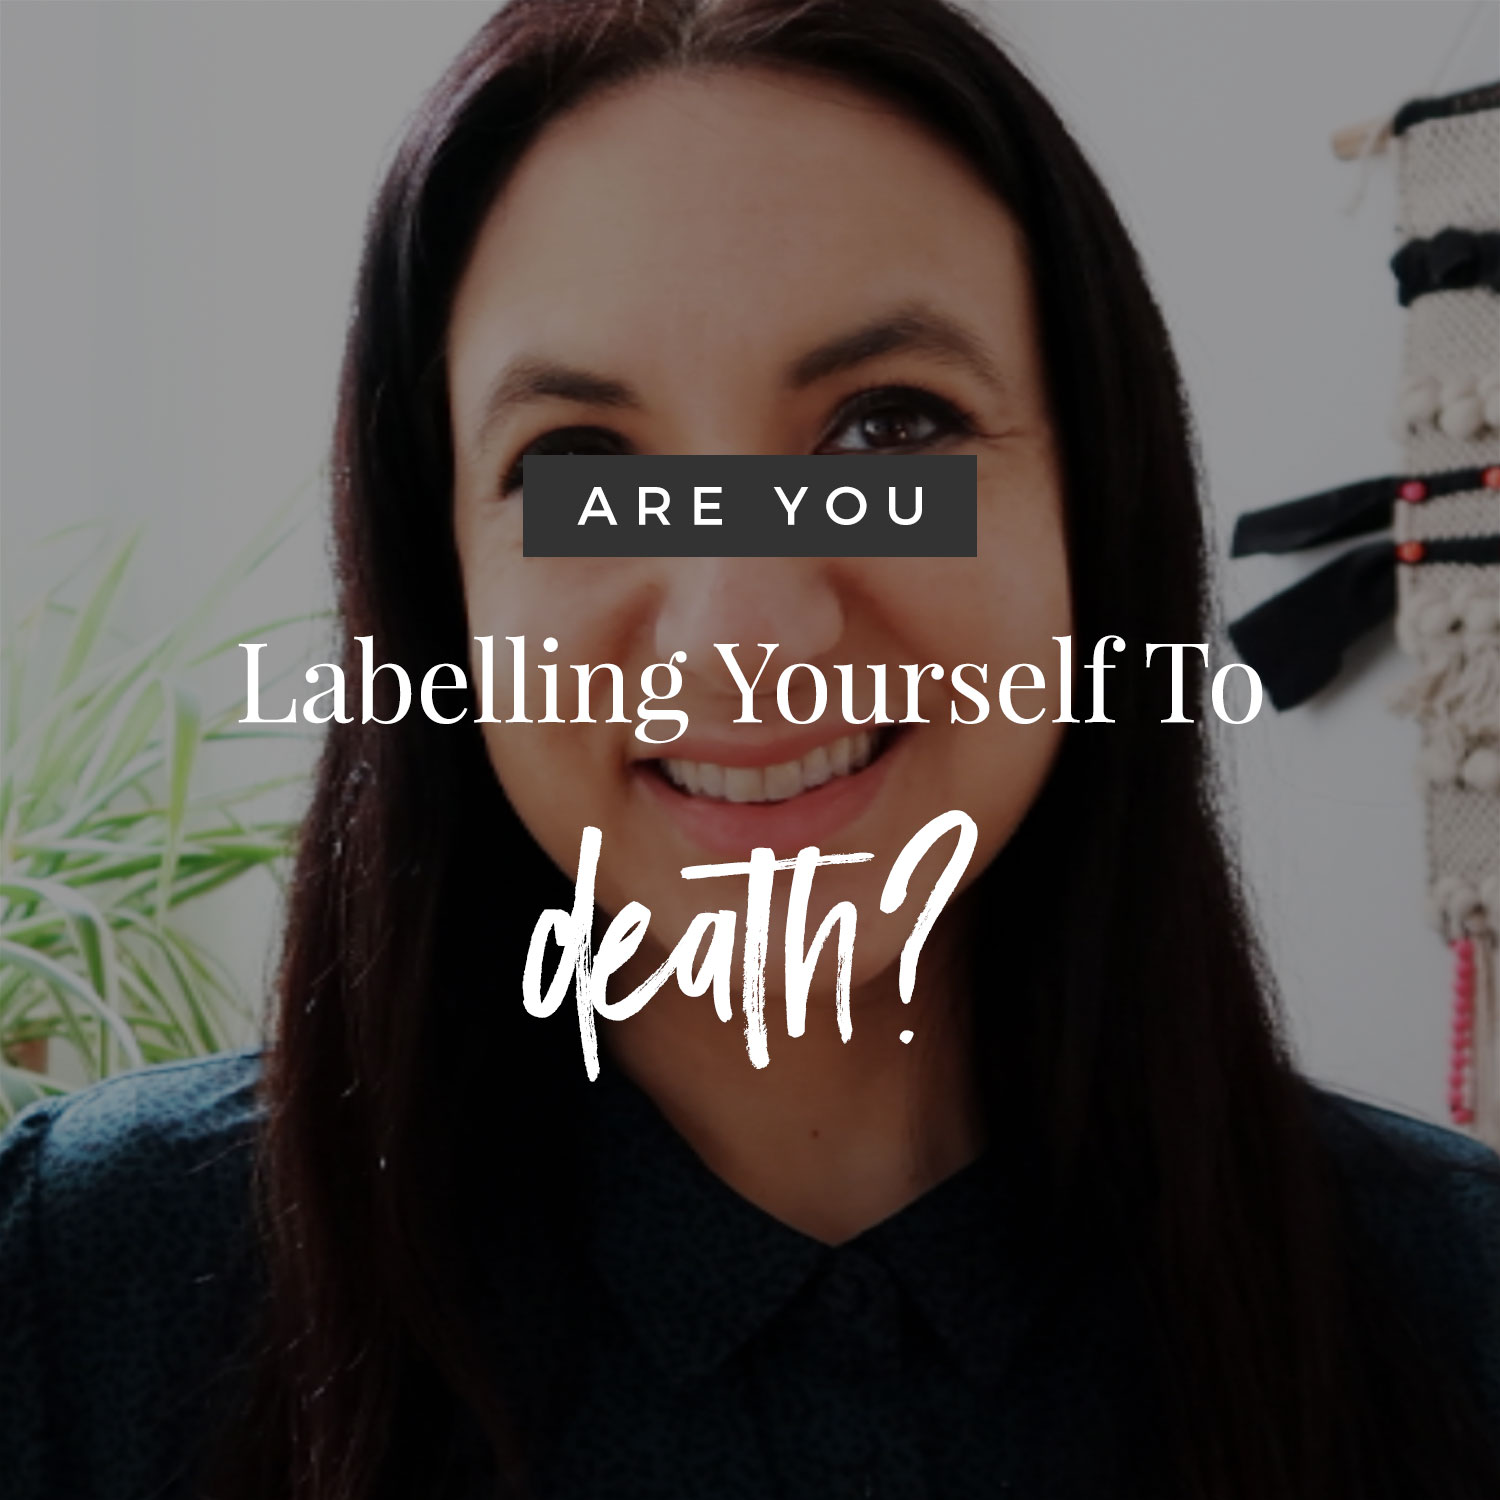 Are You Labelling Yourself To Death?